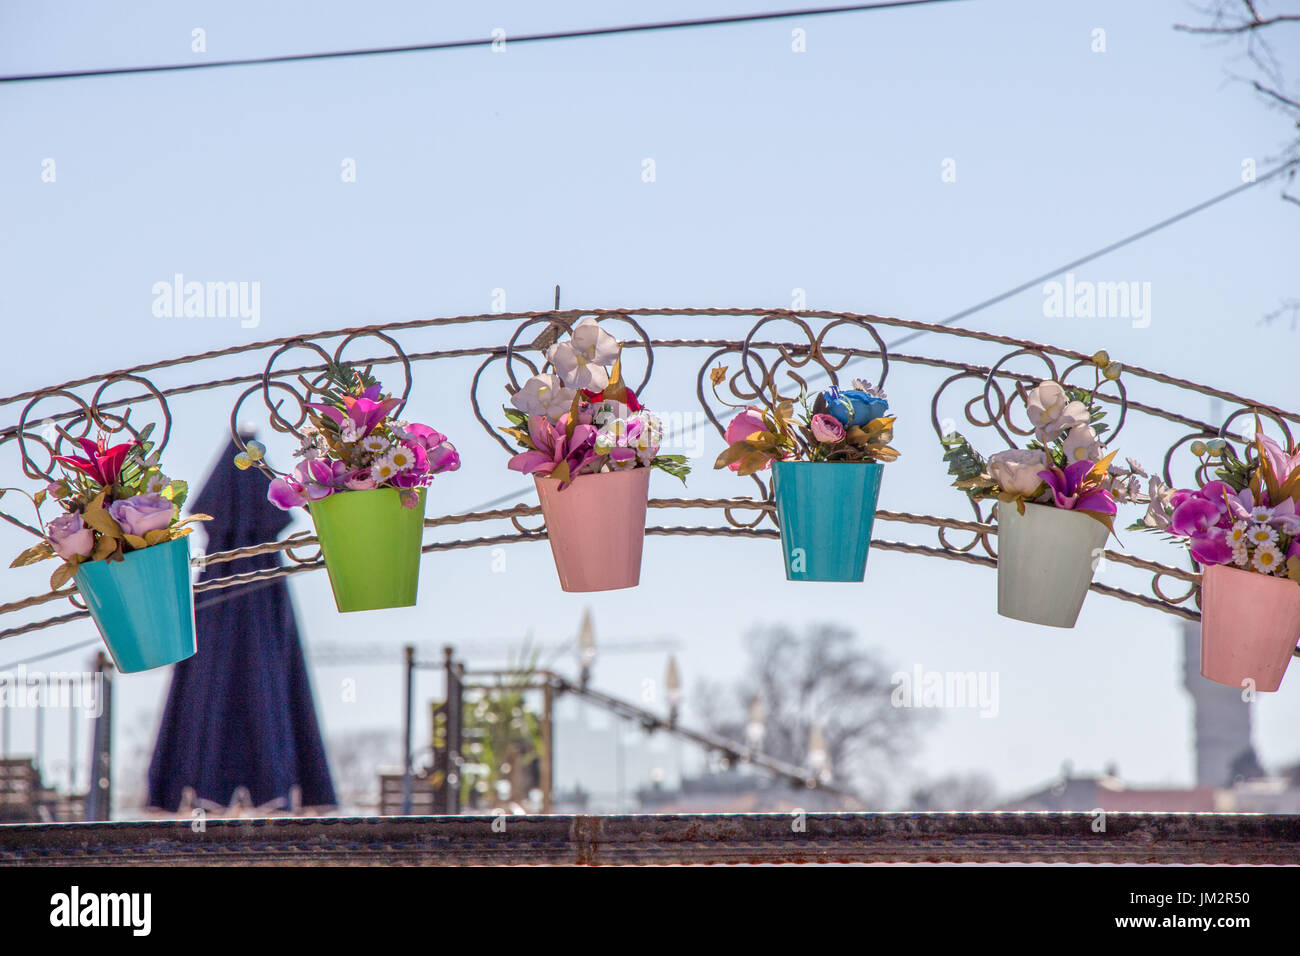 Alamy & Fake flowers in flower pots for decoration Stock Photo ...